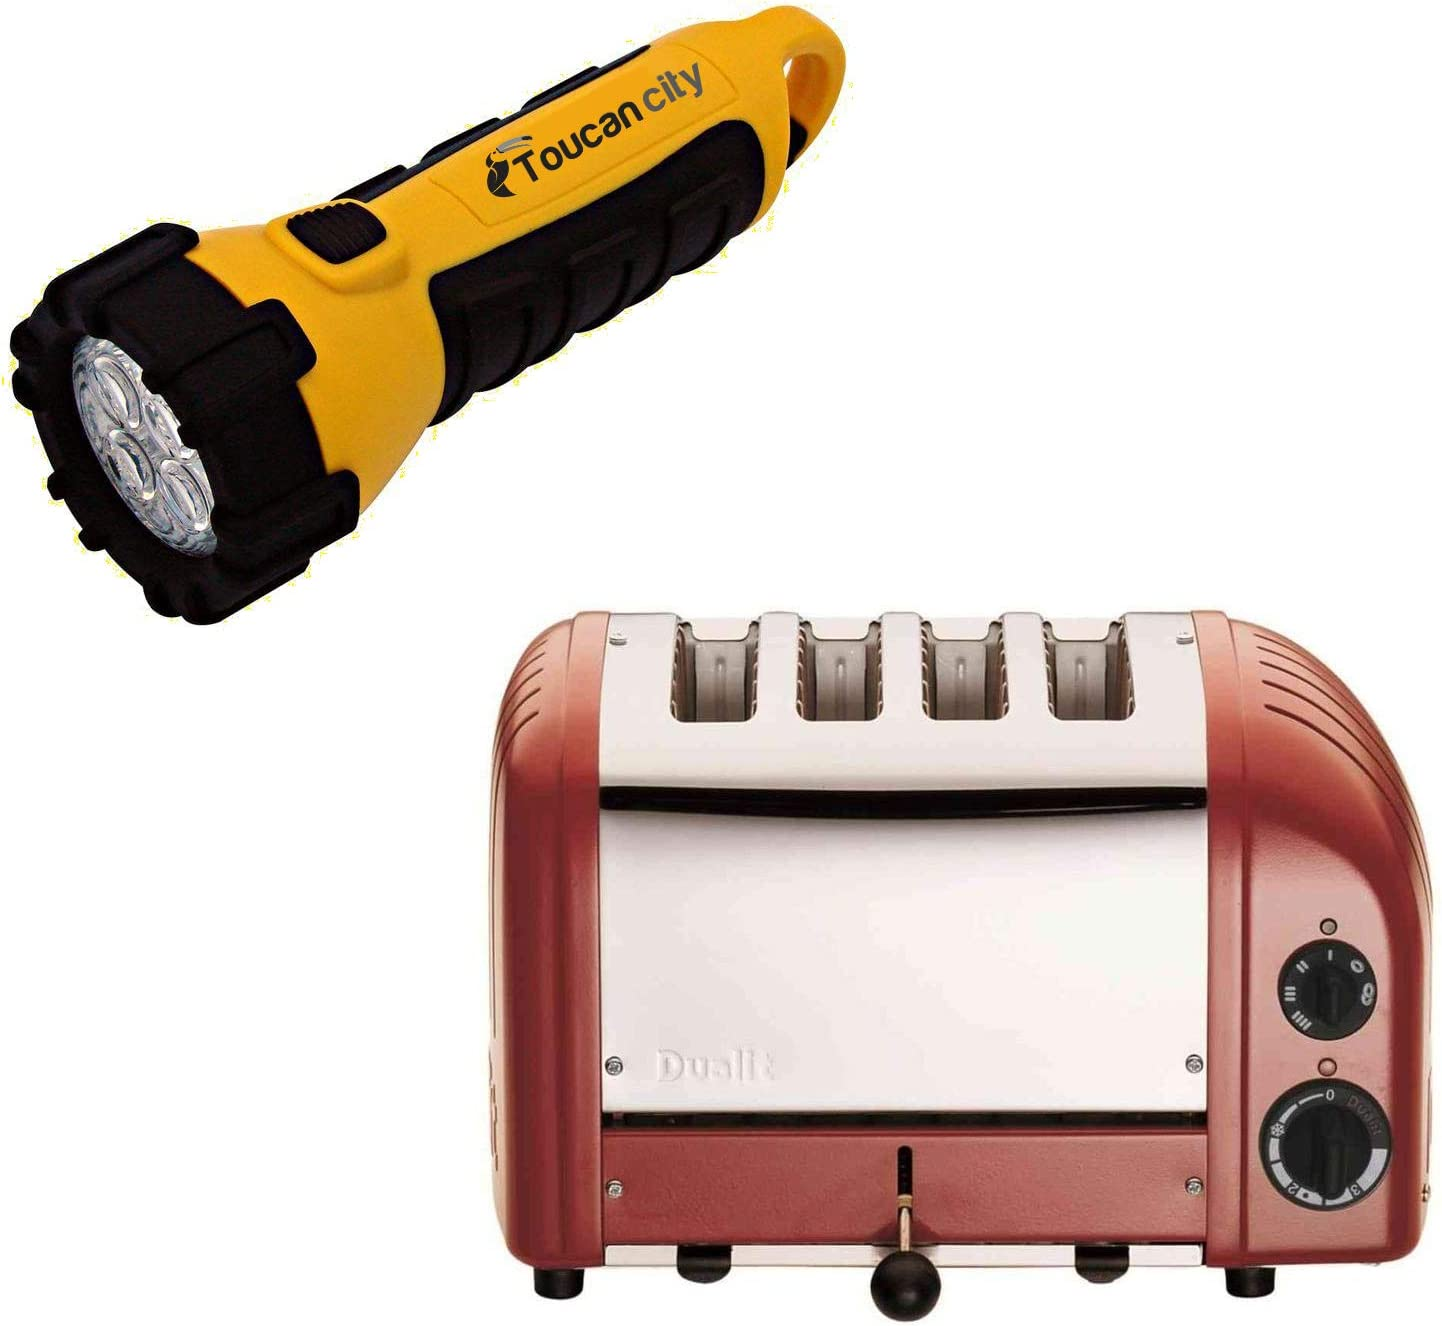 Toucan City LED Flashlight and Dualit New Gen 4-Slice Red Wide Slot Toaster with Crumb Tray 40417